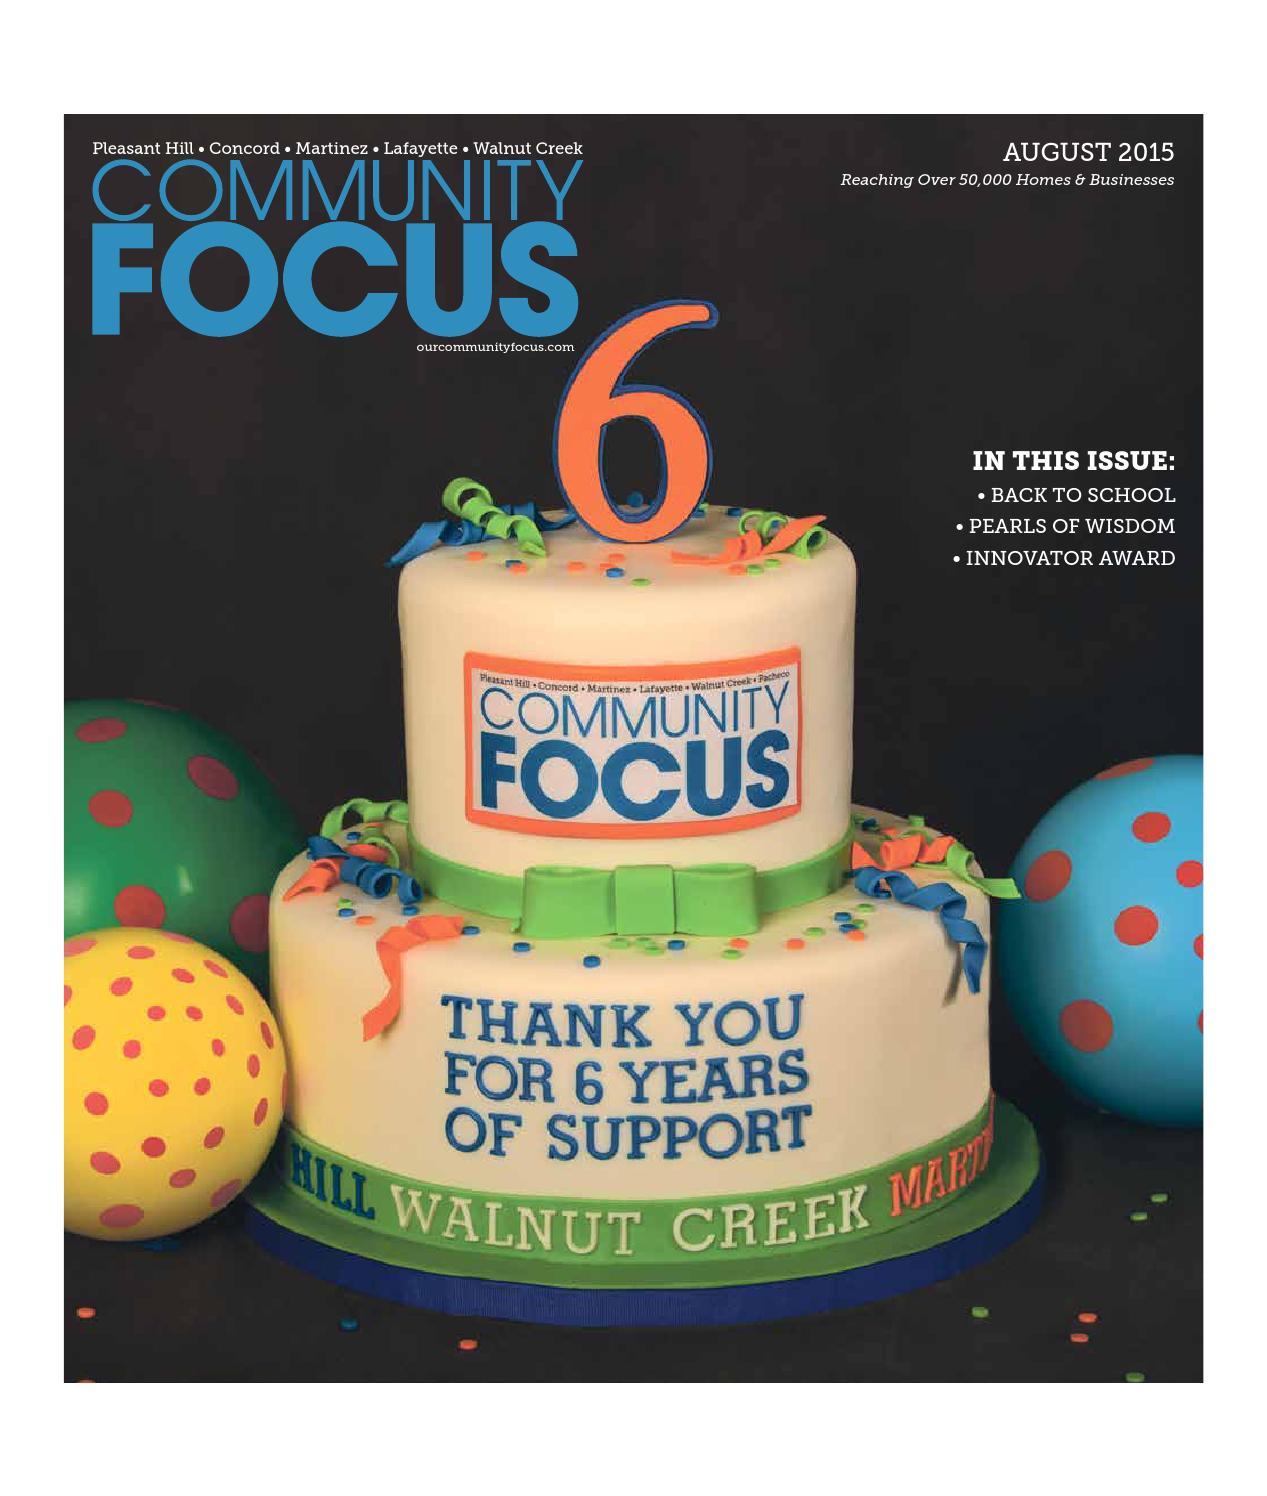 August 2015 Community Focus by Community Focus - issuu